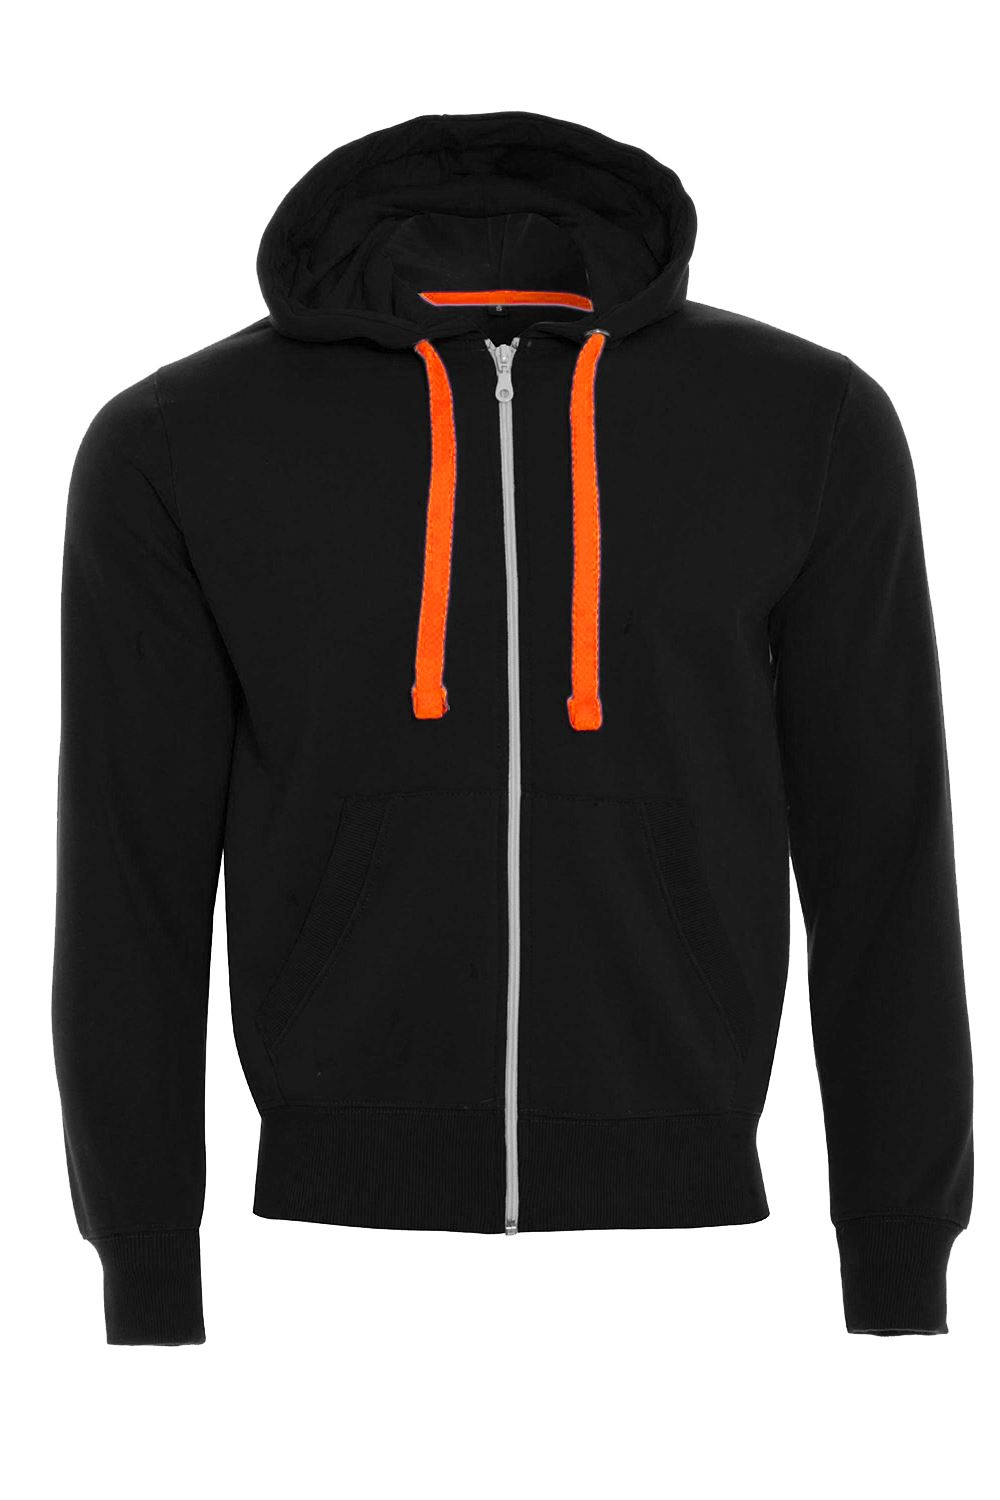 Boys Hoodies and Sweatshirts. Boys practically live in hoodies and sweatshirts, and it's easy to see why--they're comfy to wear and easy to throw on over a T-shirt. Keeping his closet stocked with options is a cinch thanks to Amazon's selection of pullovers, zip-ups, crewneck styles, and more.